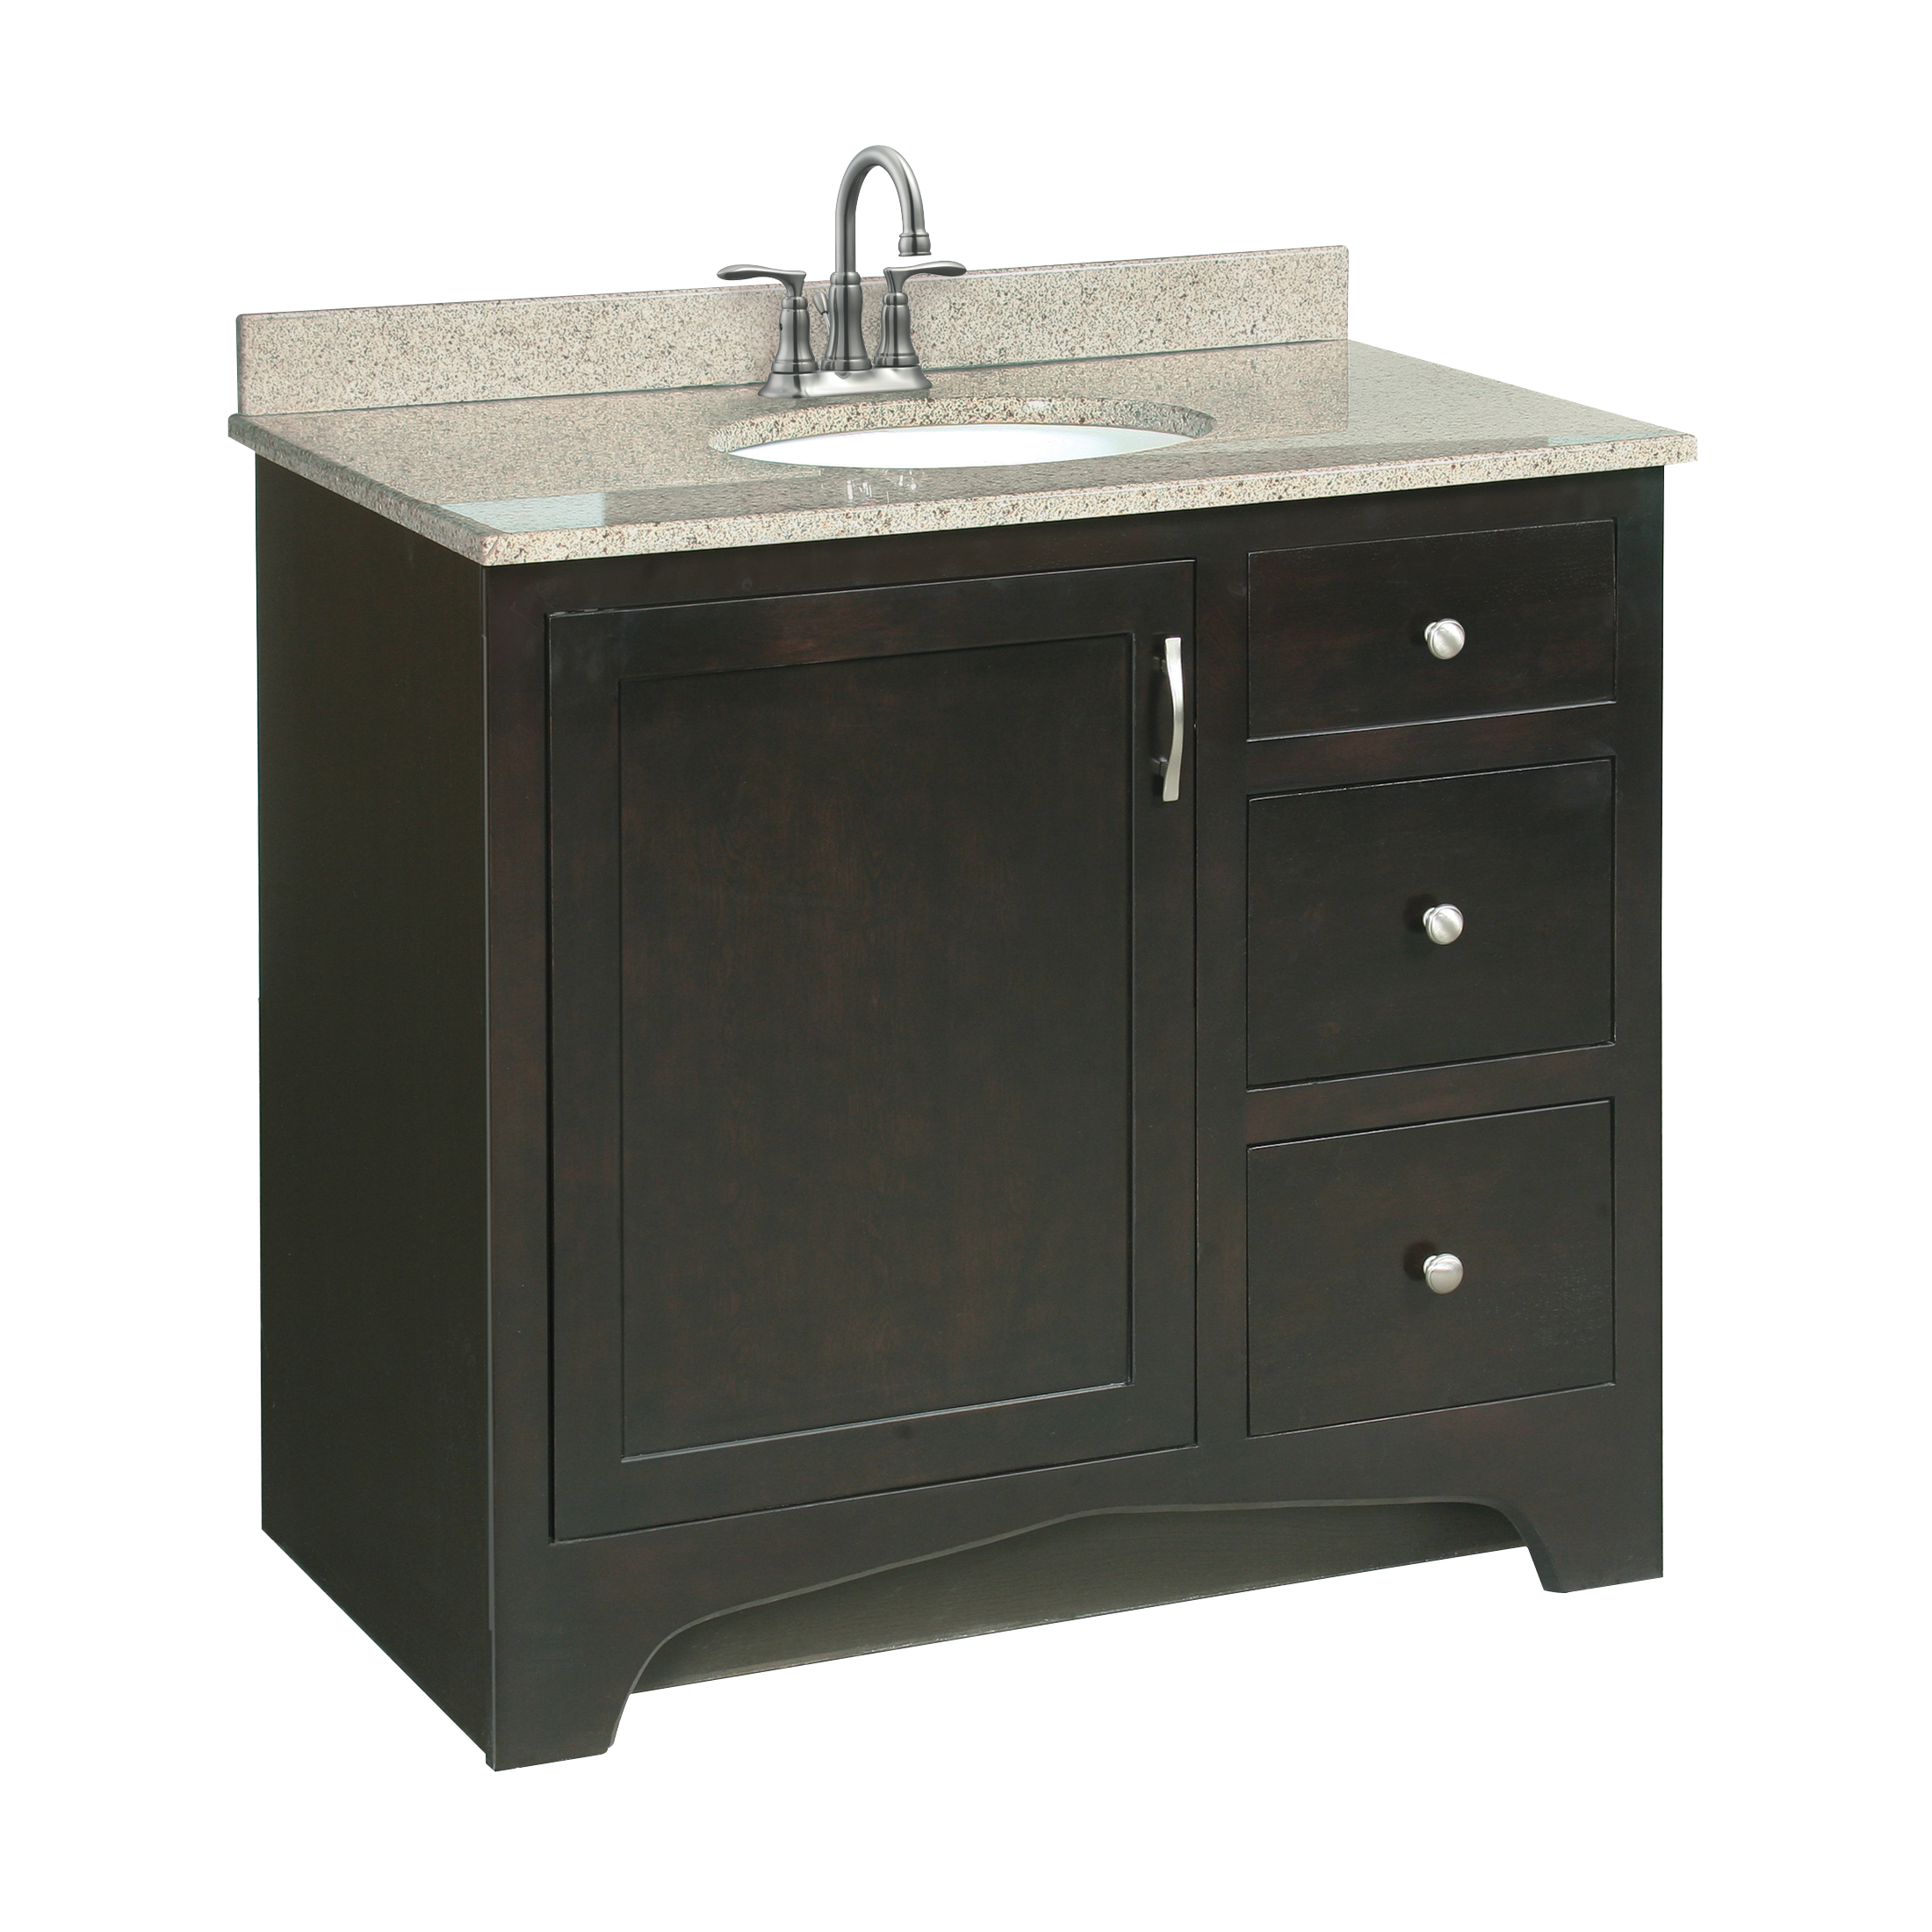 Ventura 36x21 rta 1 door 2 drawer vanity 541284 bath - Unassembled bathroom vanity cabinets ...